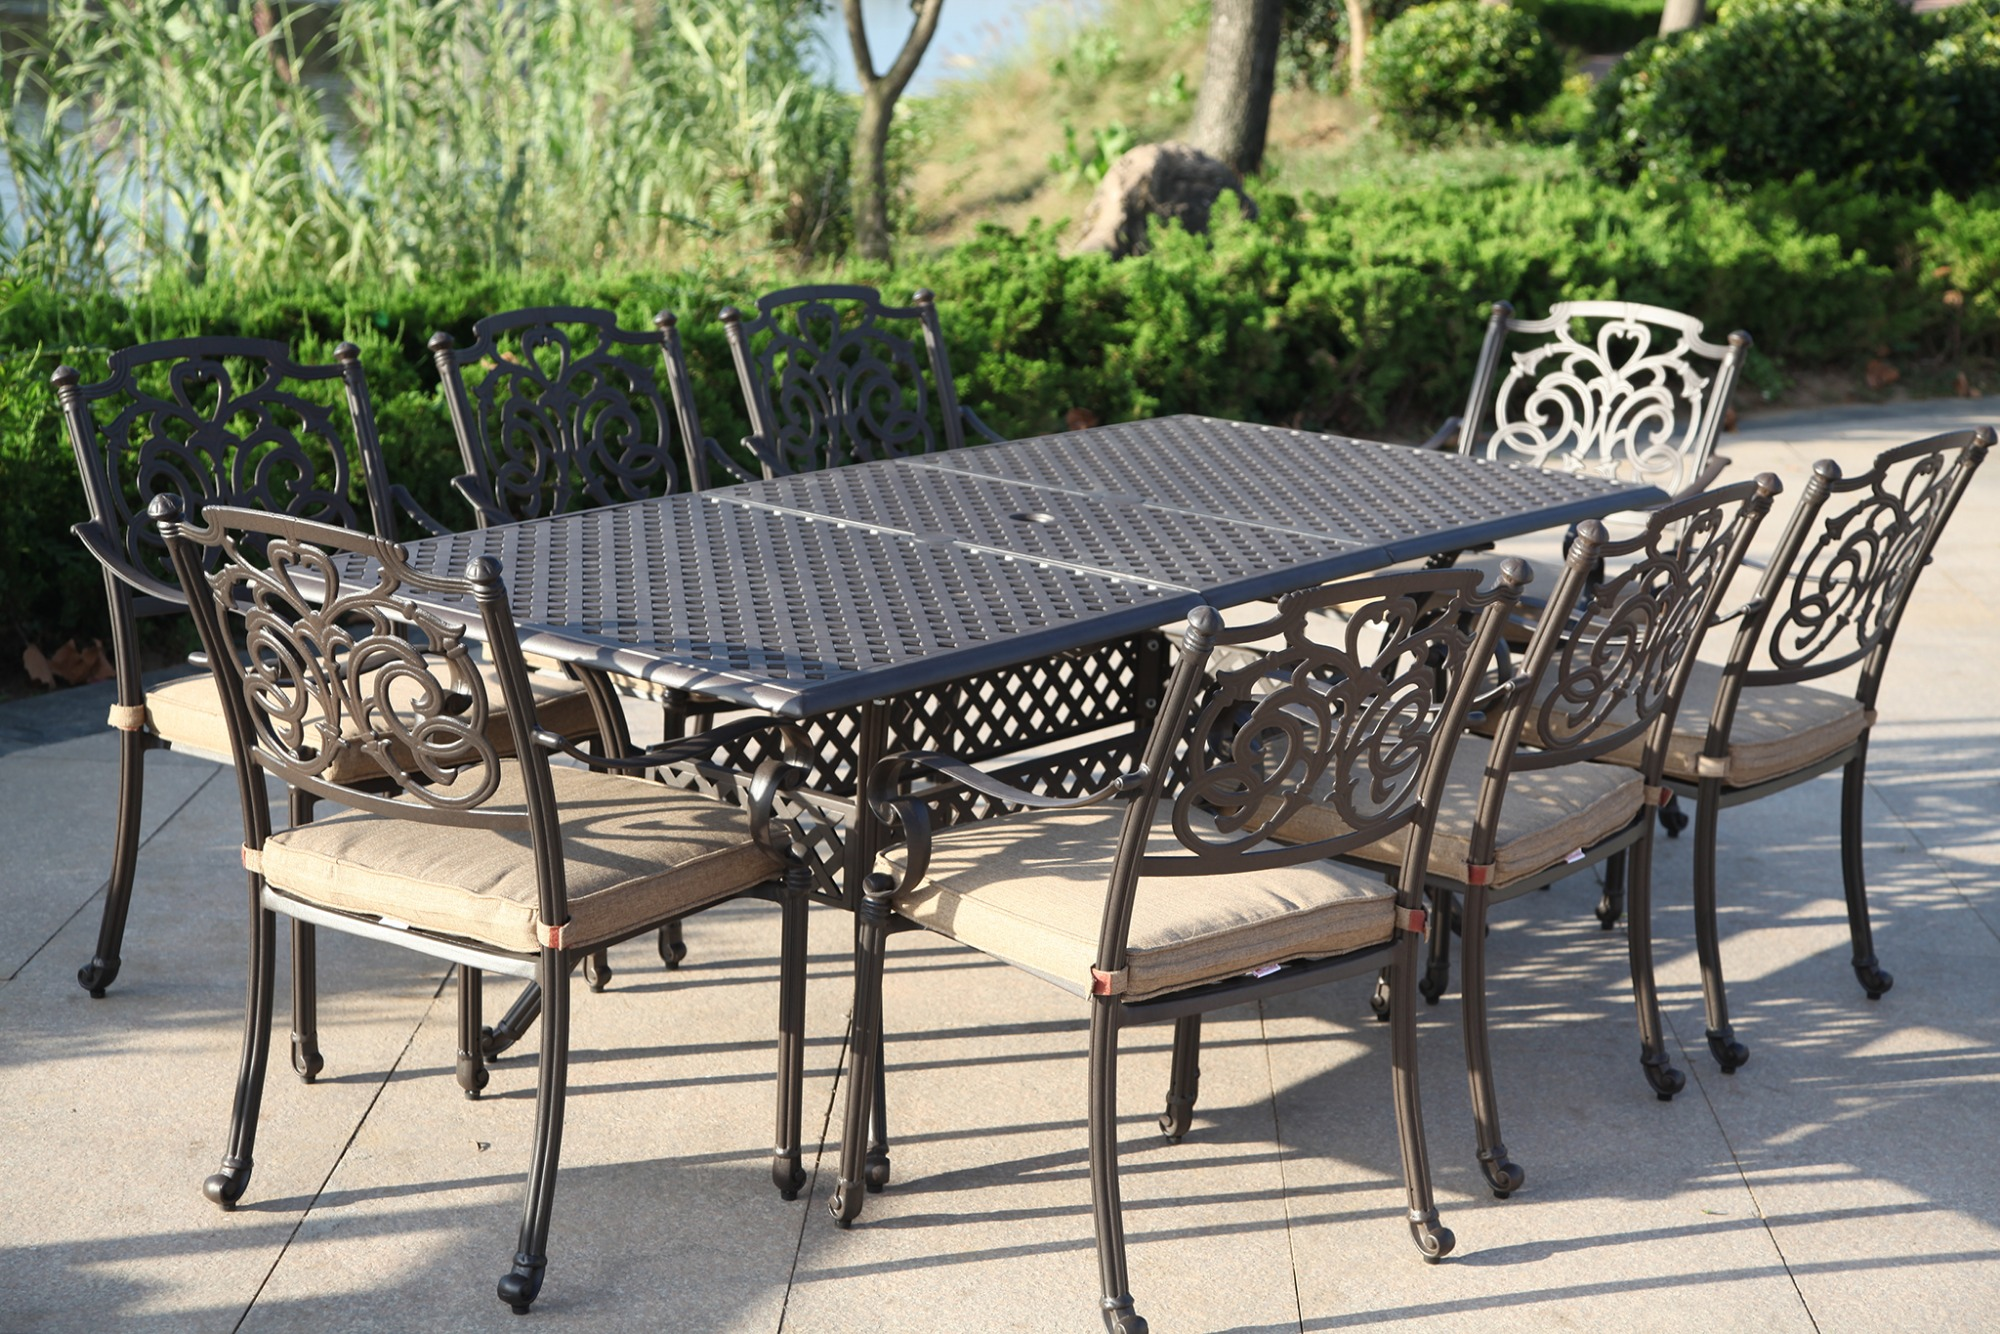 SY-9193T 9319C stretchable table set